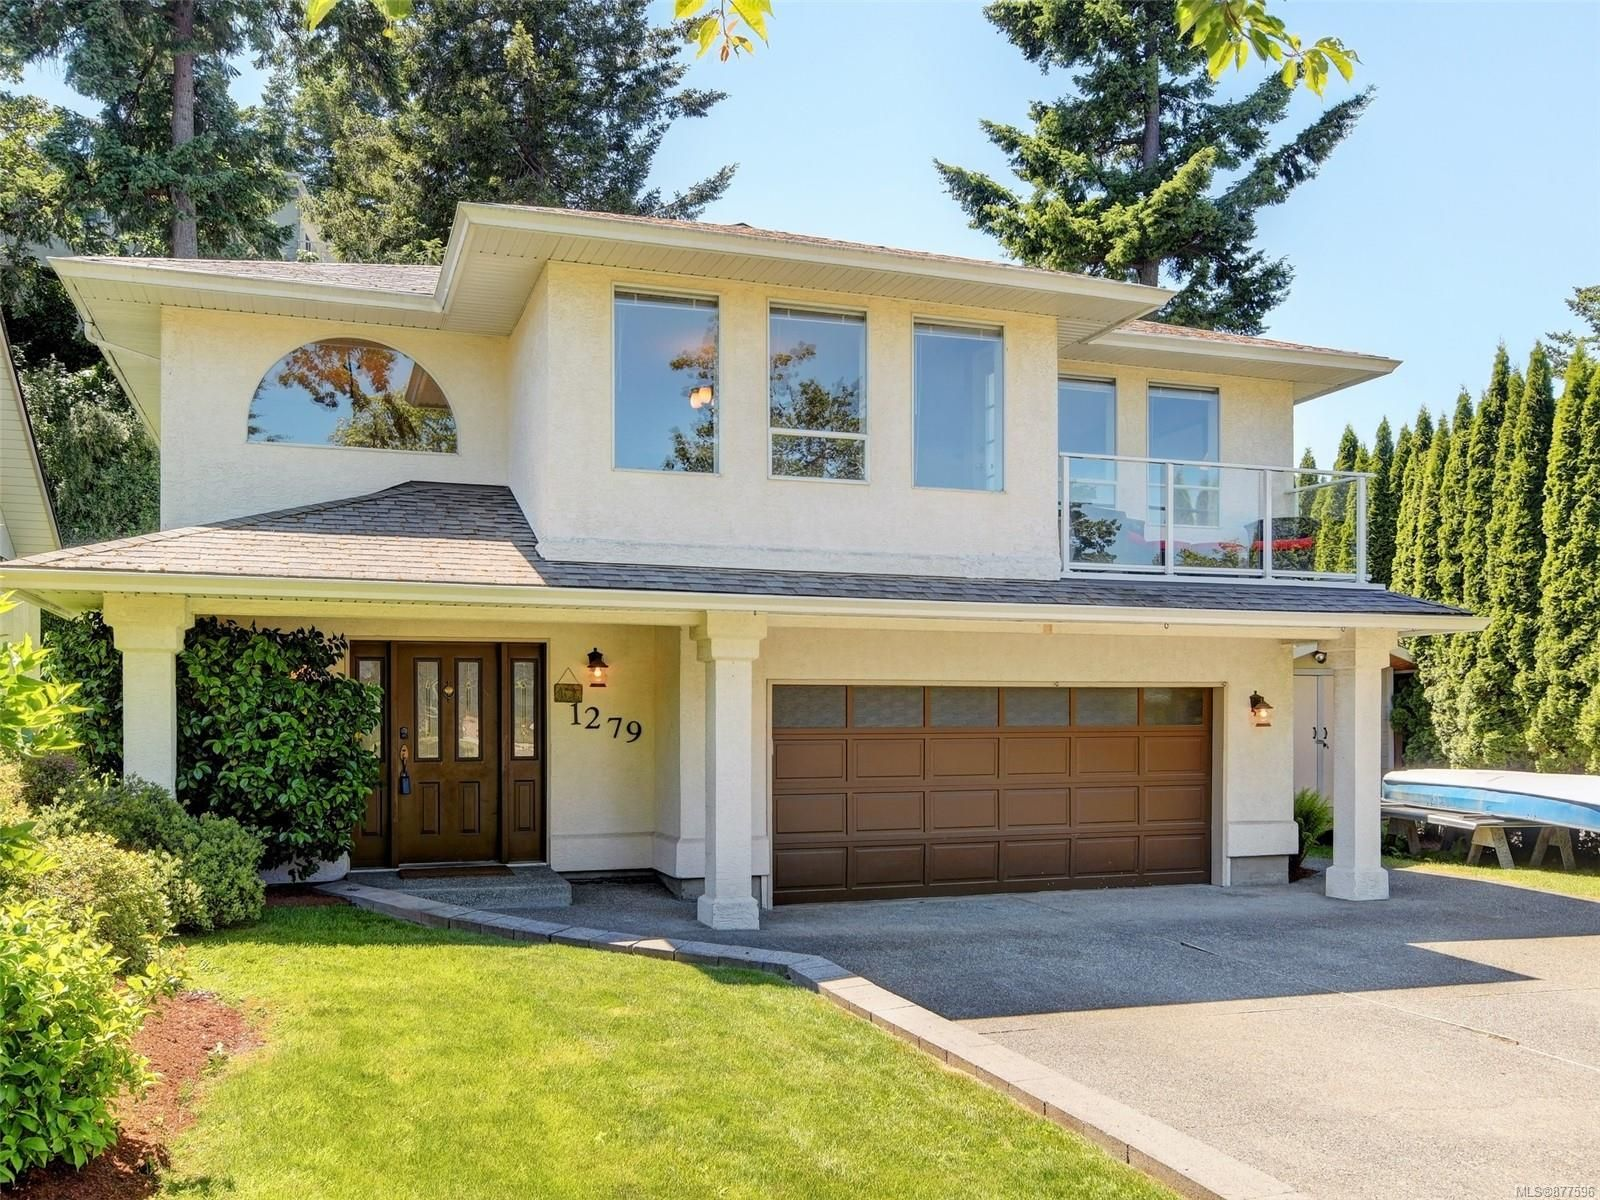 Main Photo: 1279 Knockan Dr in : SW Strawberry Vale House for sale (Saanich West)  : MLS®# 877596